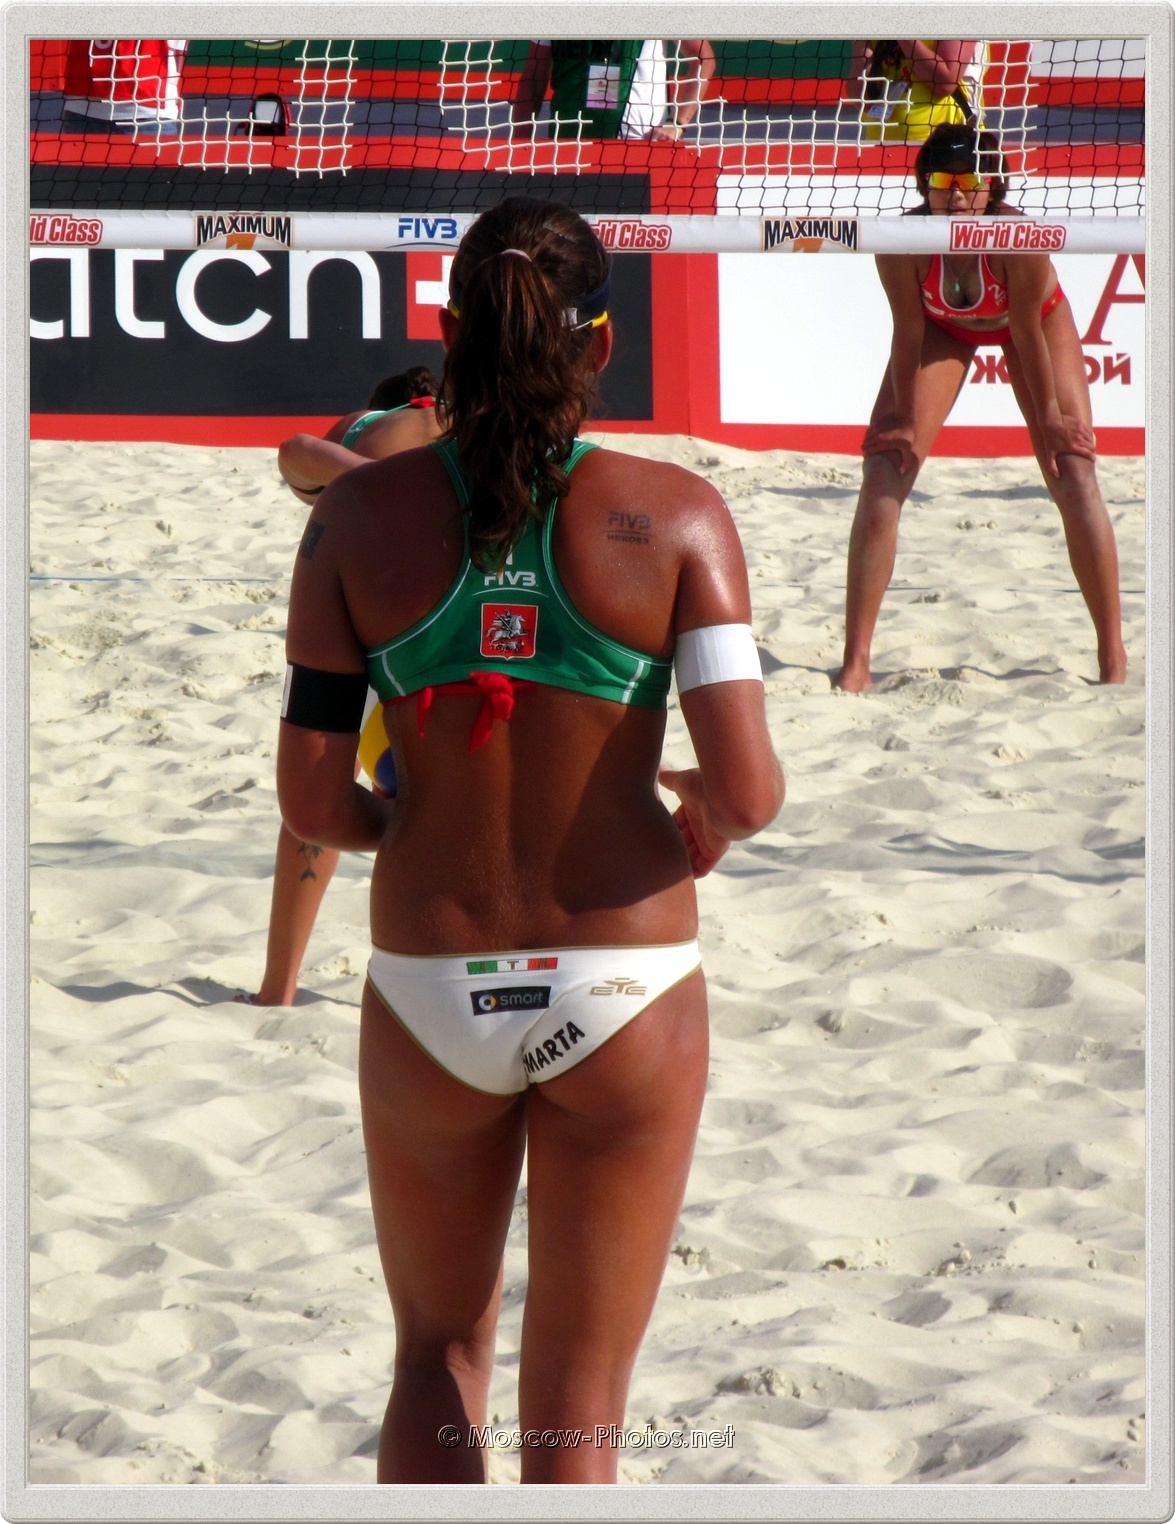 Serve of Italian Beach Volleyball Player Marta Menegatti